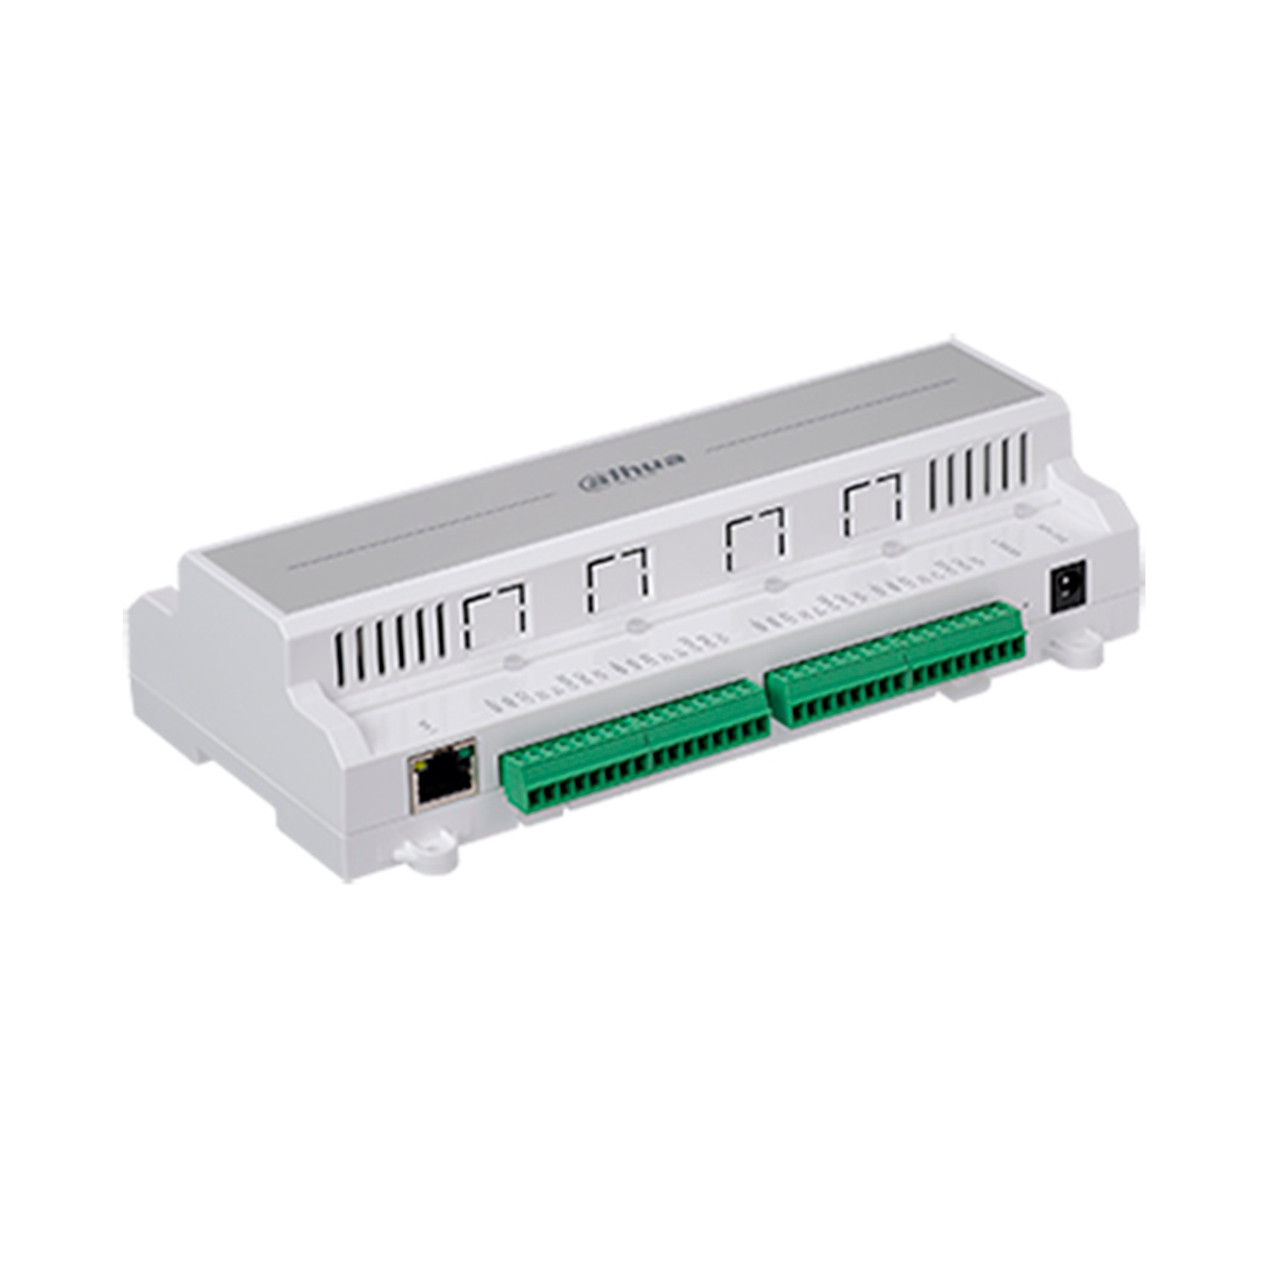 Dahua DHI-ASC1204B Four-door Access Controller